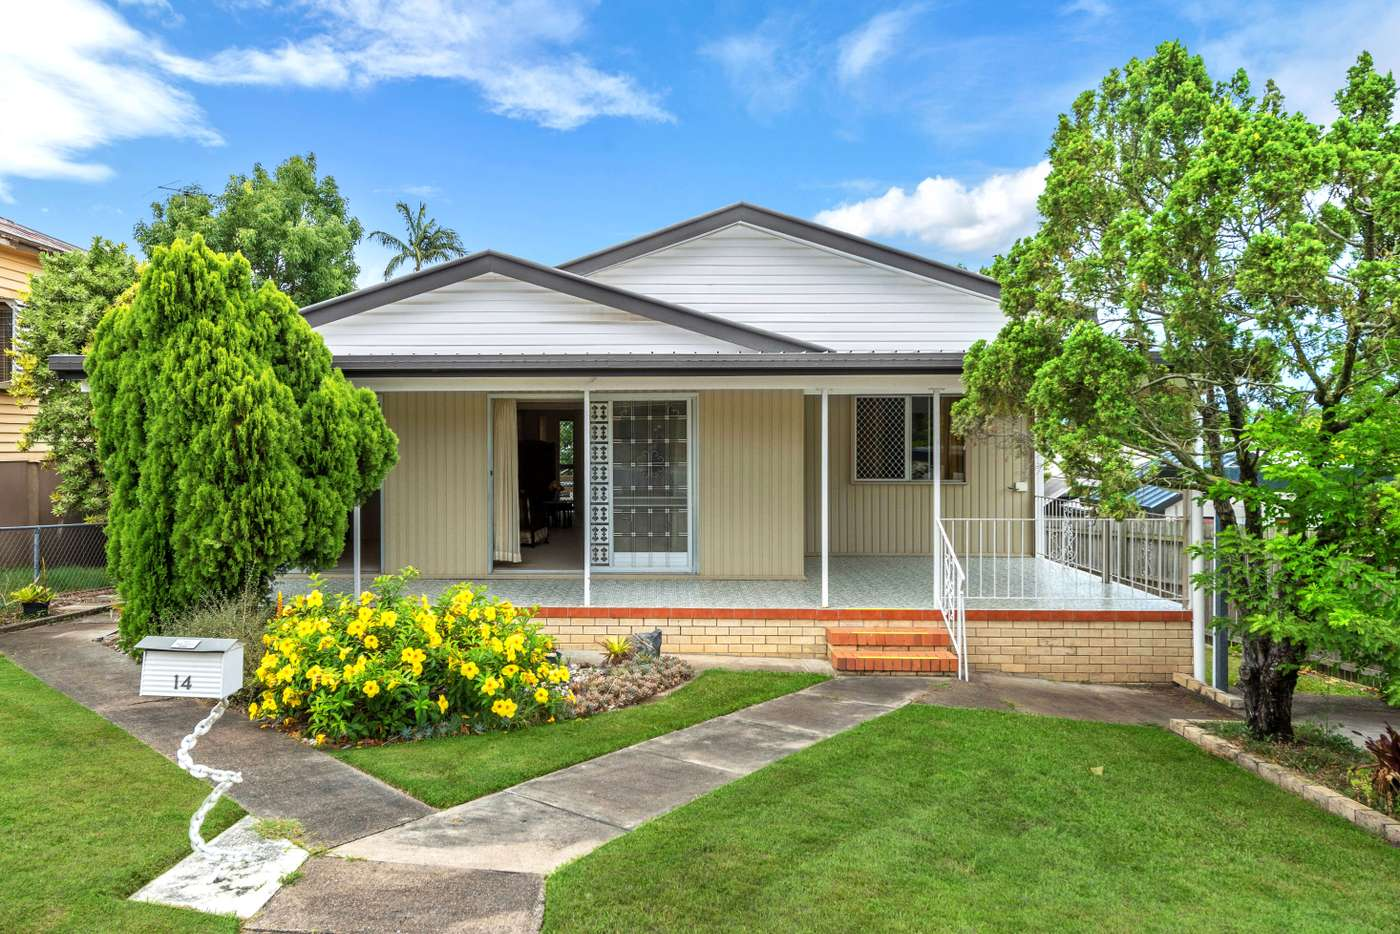 Main view of Homely house listing, 14 Clegg Parade, Newmarket QLD 4051